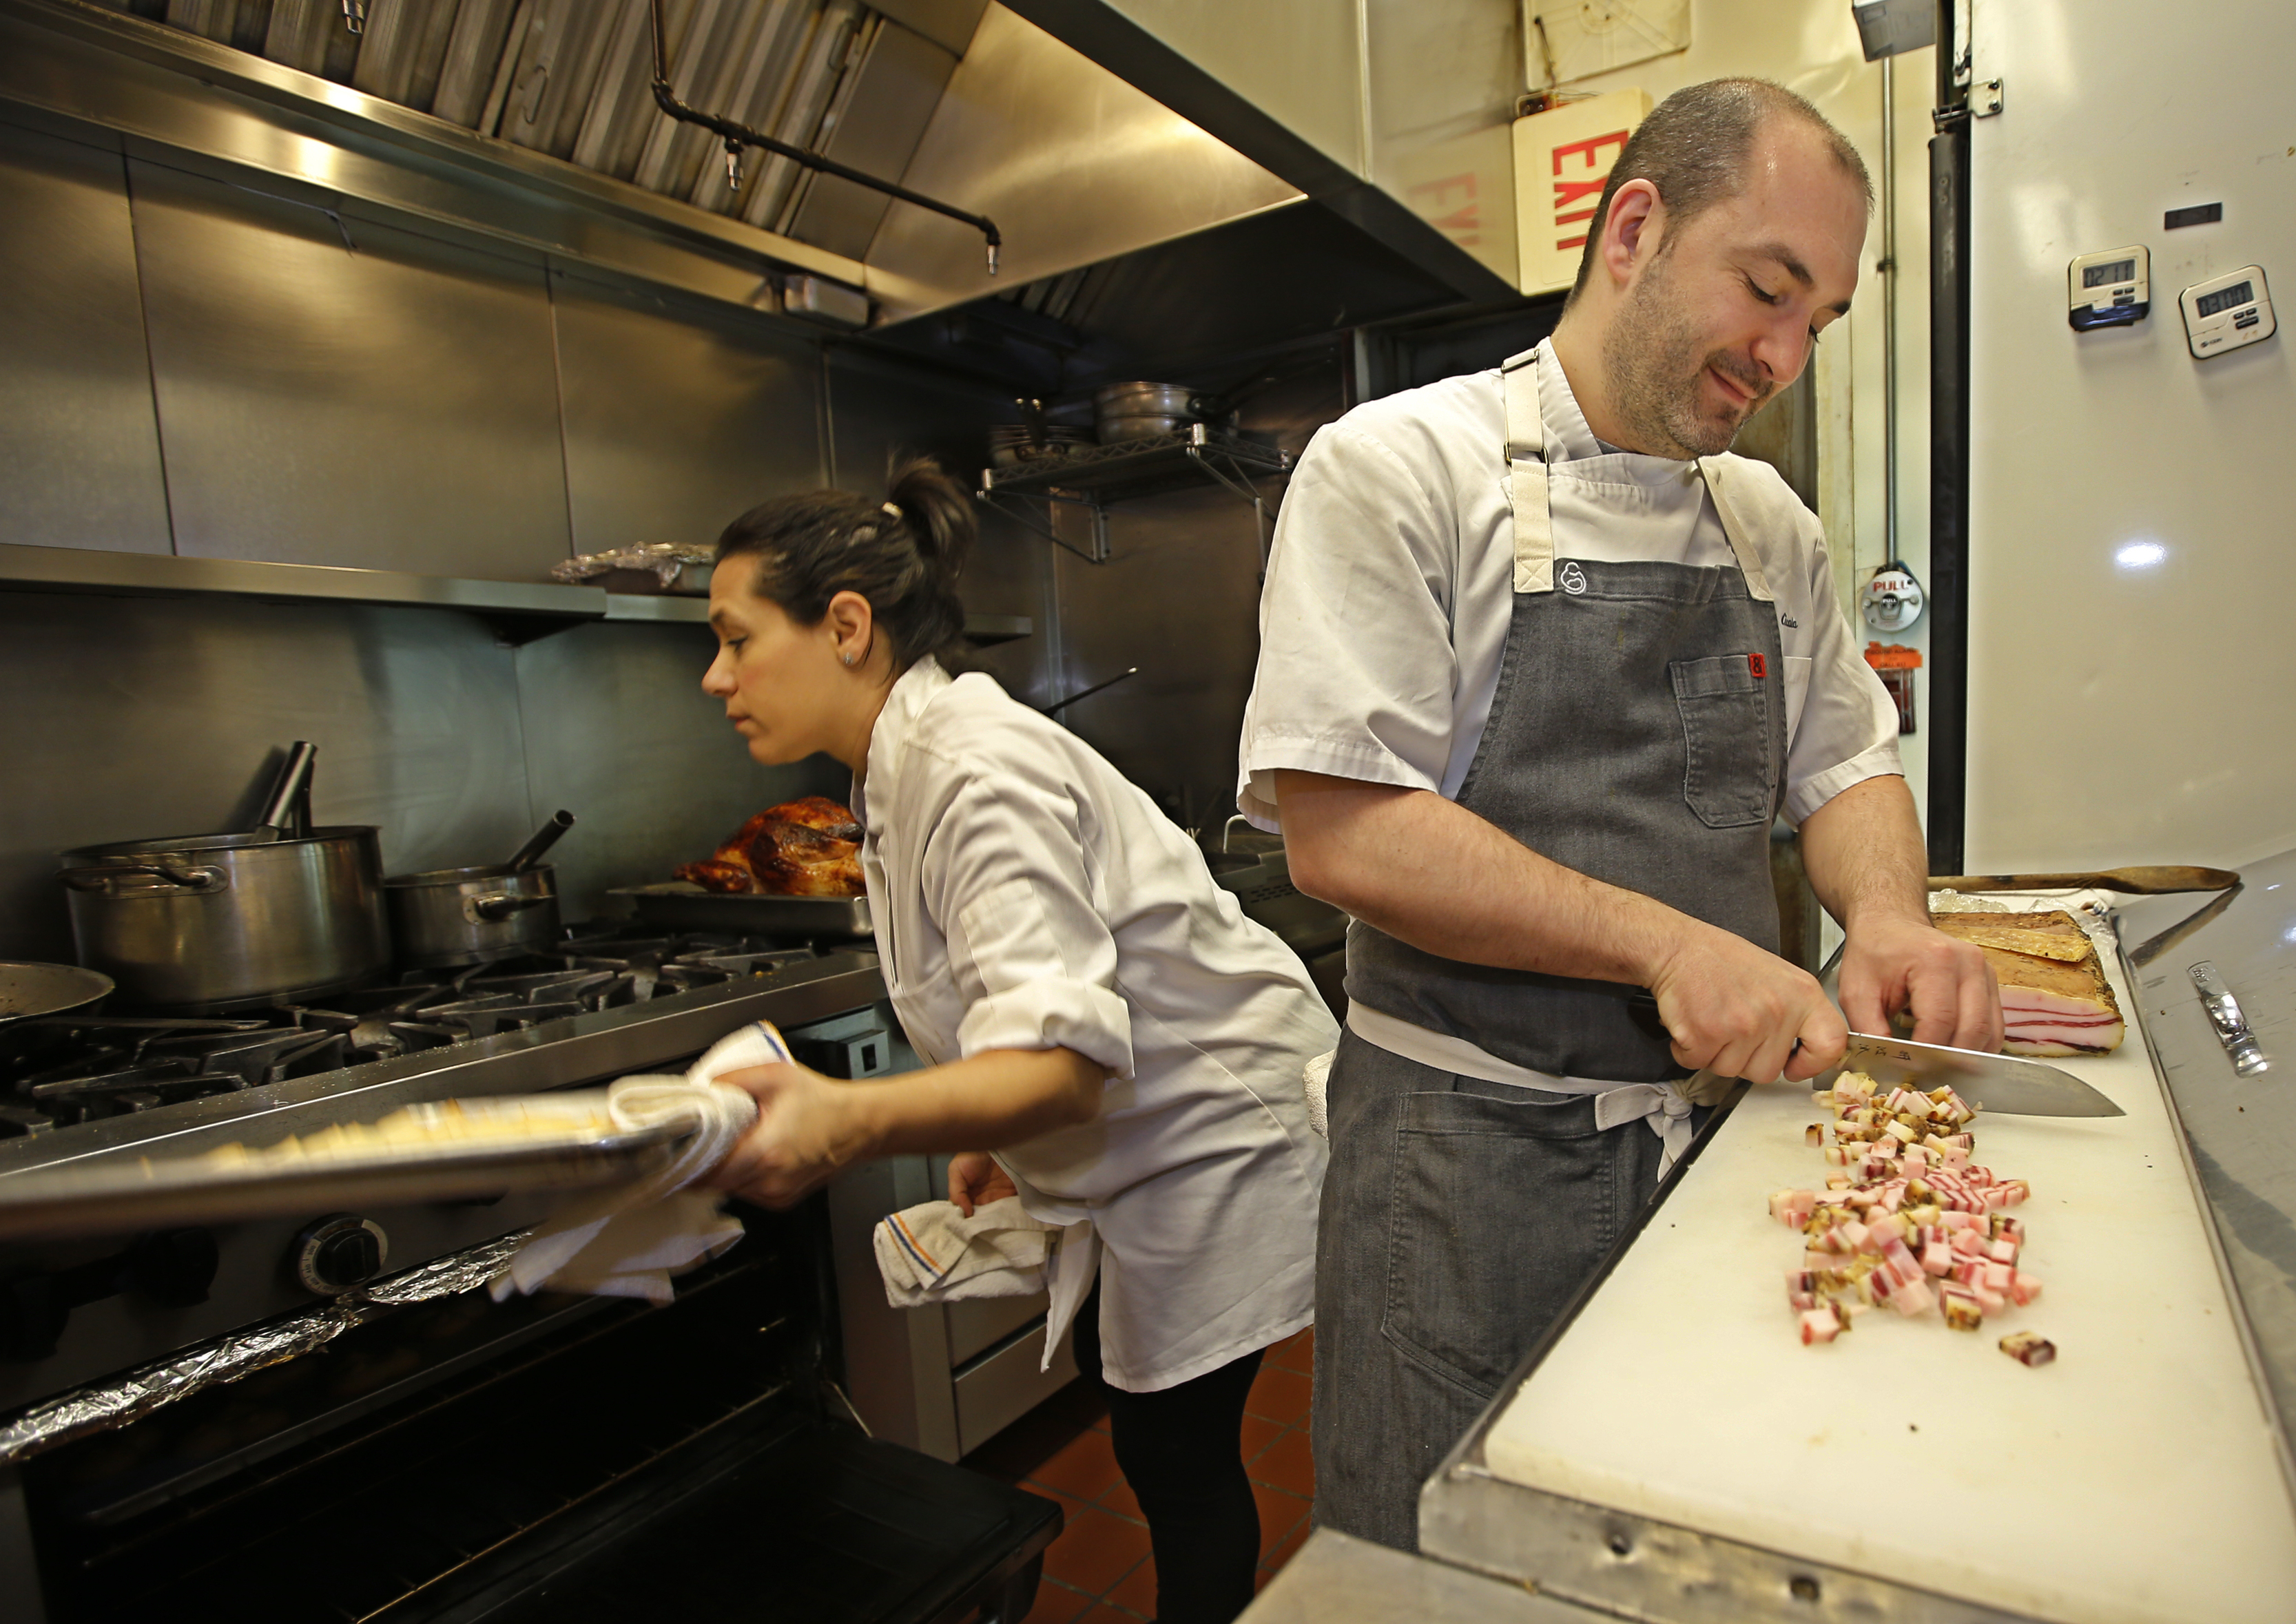 Chef Joe Cicala and his wife, Angela Ranalli-Cicala, working in the kitchen at Le Virtu in 2015.